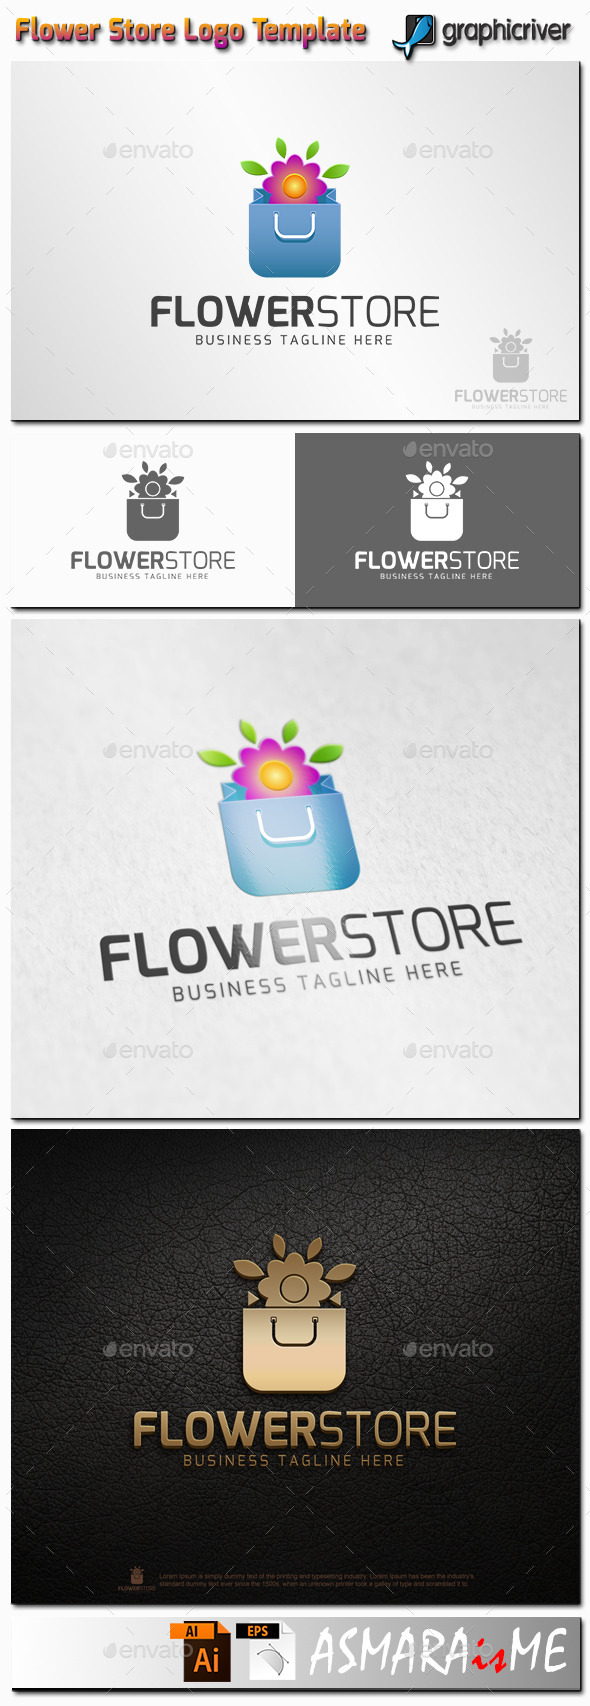 GraphicRiver Flower Store Logo 11216690